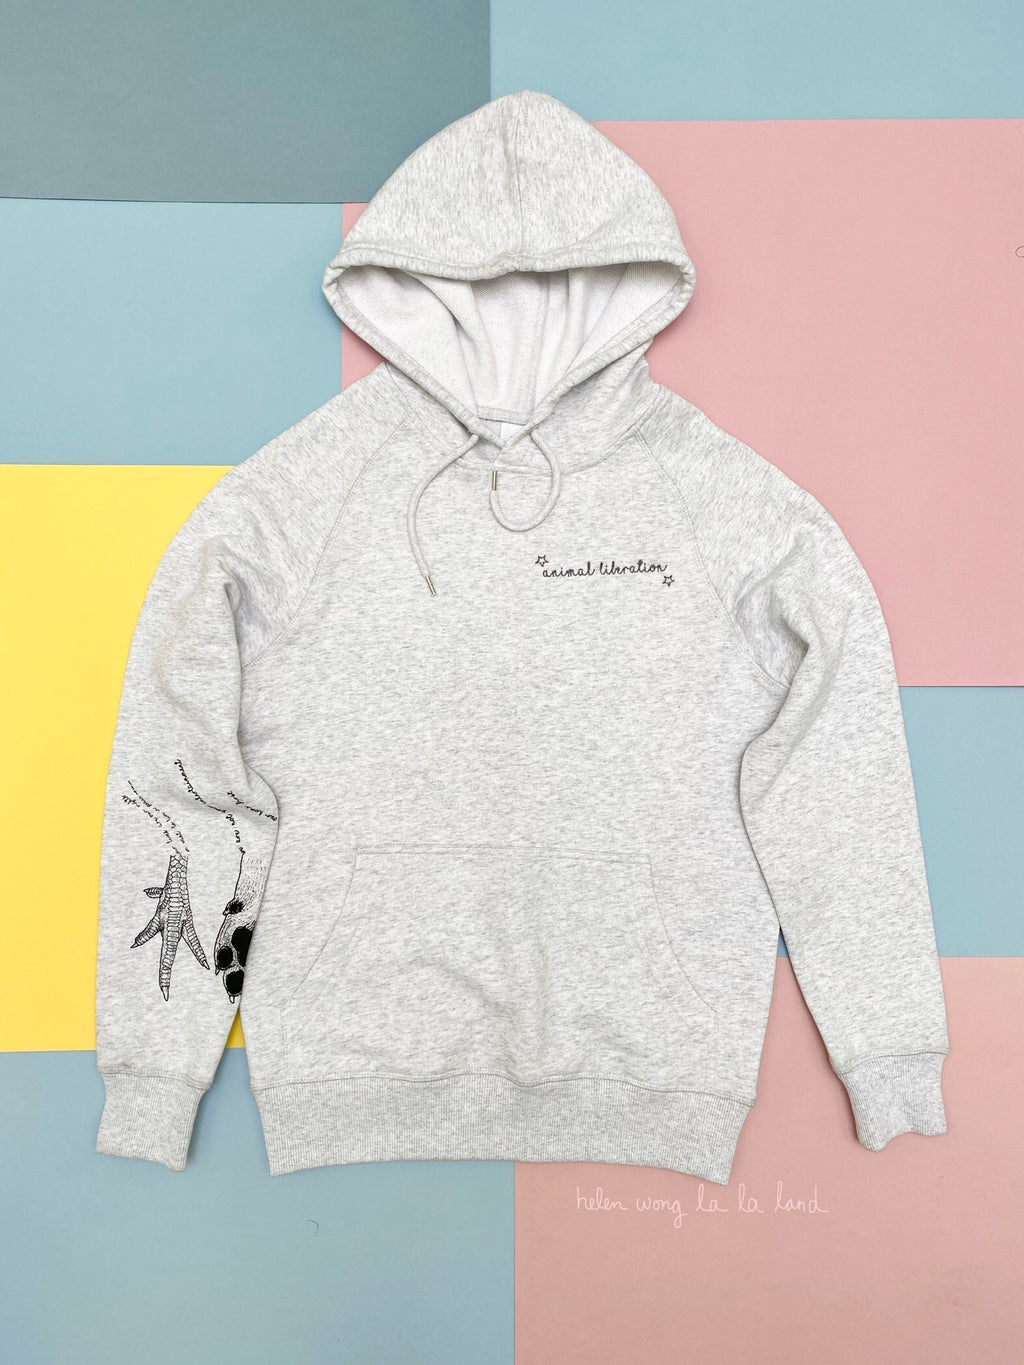 (S/S 2020) Hoof+Claw+Paw+Hand hoodie in WHITE HEATHER